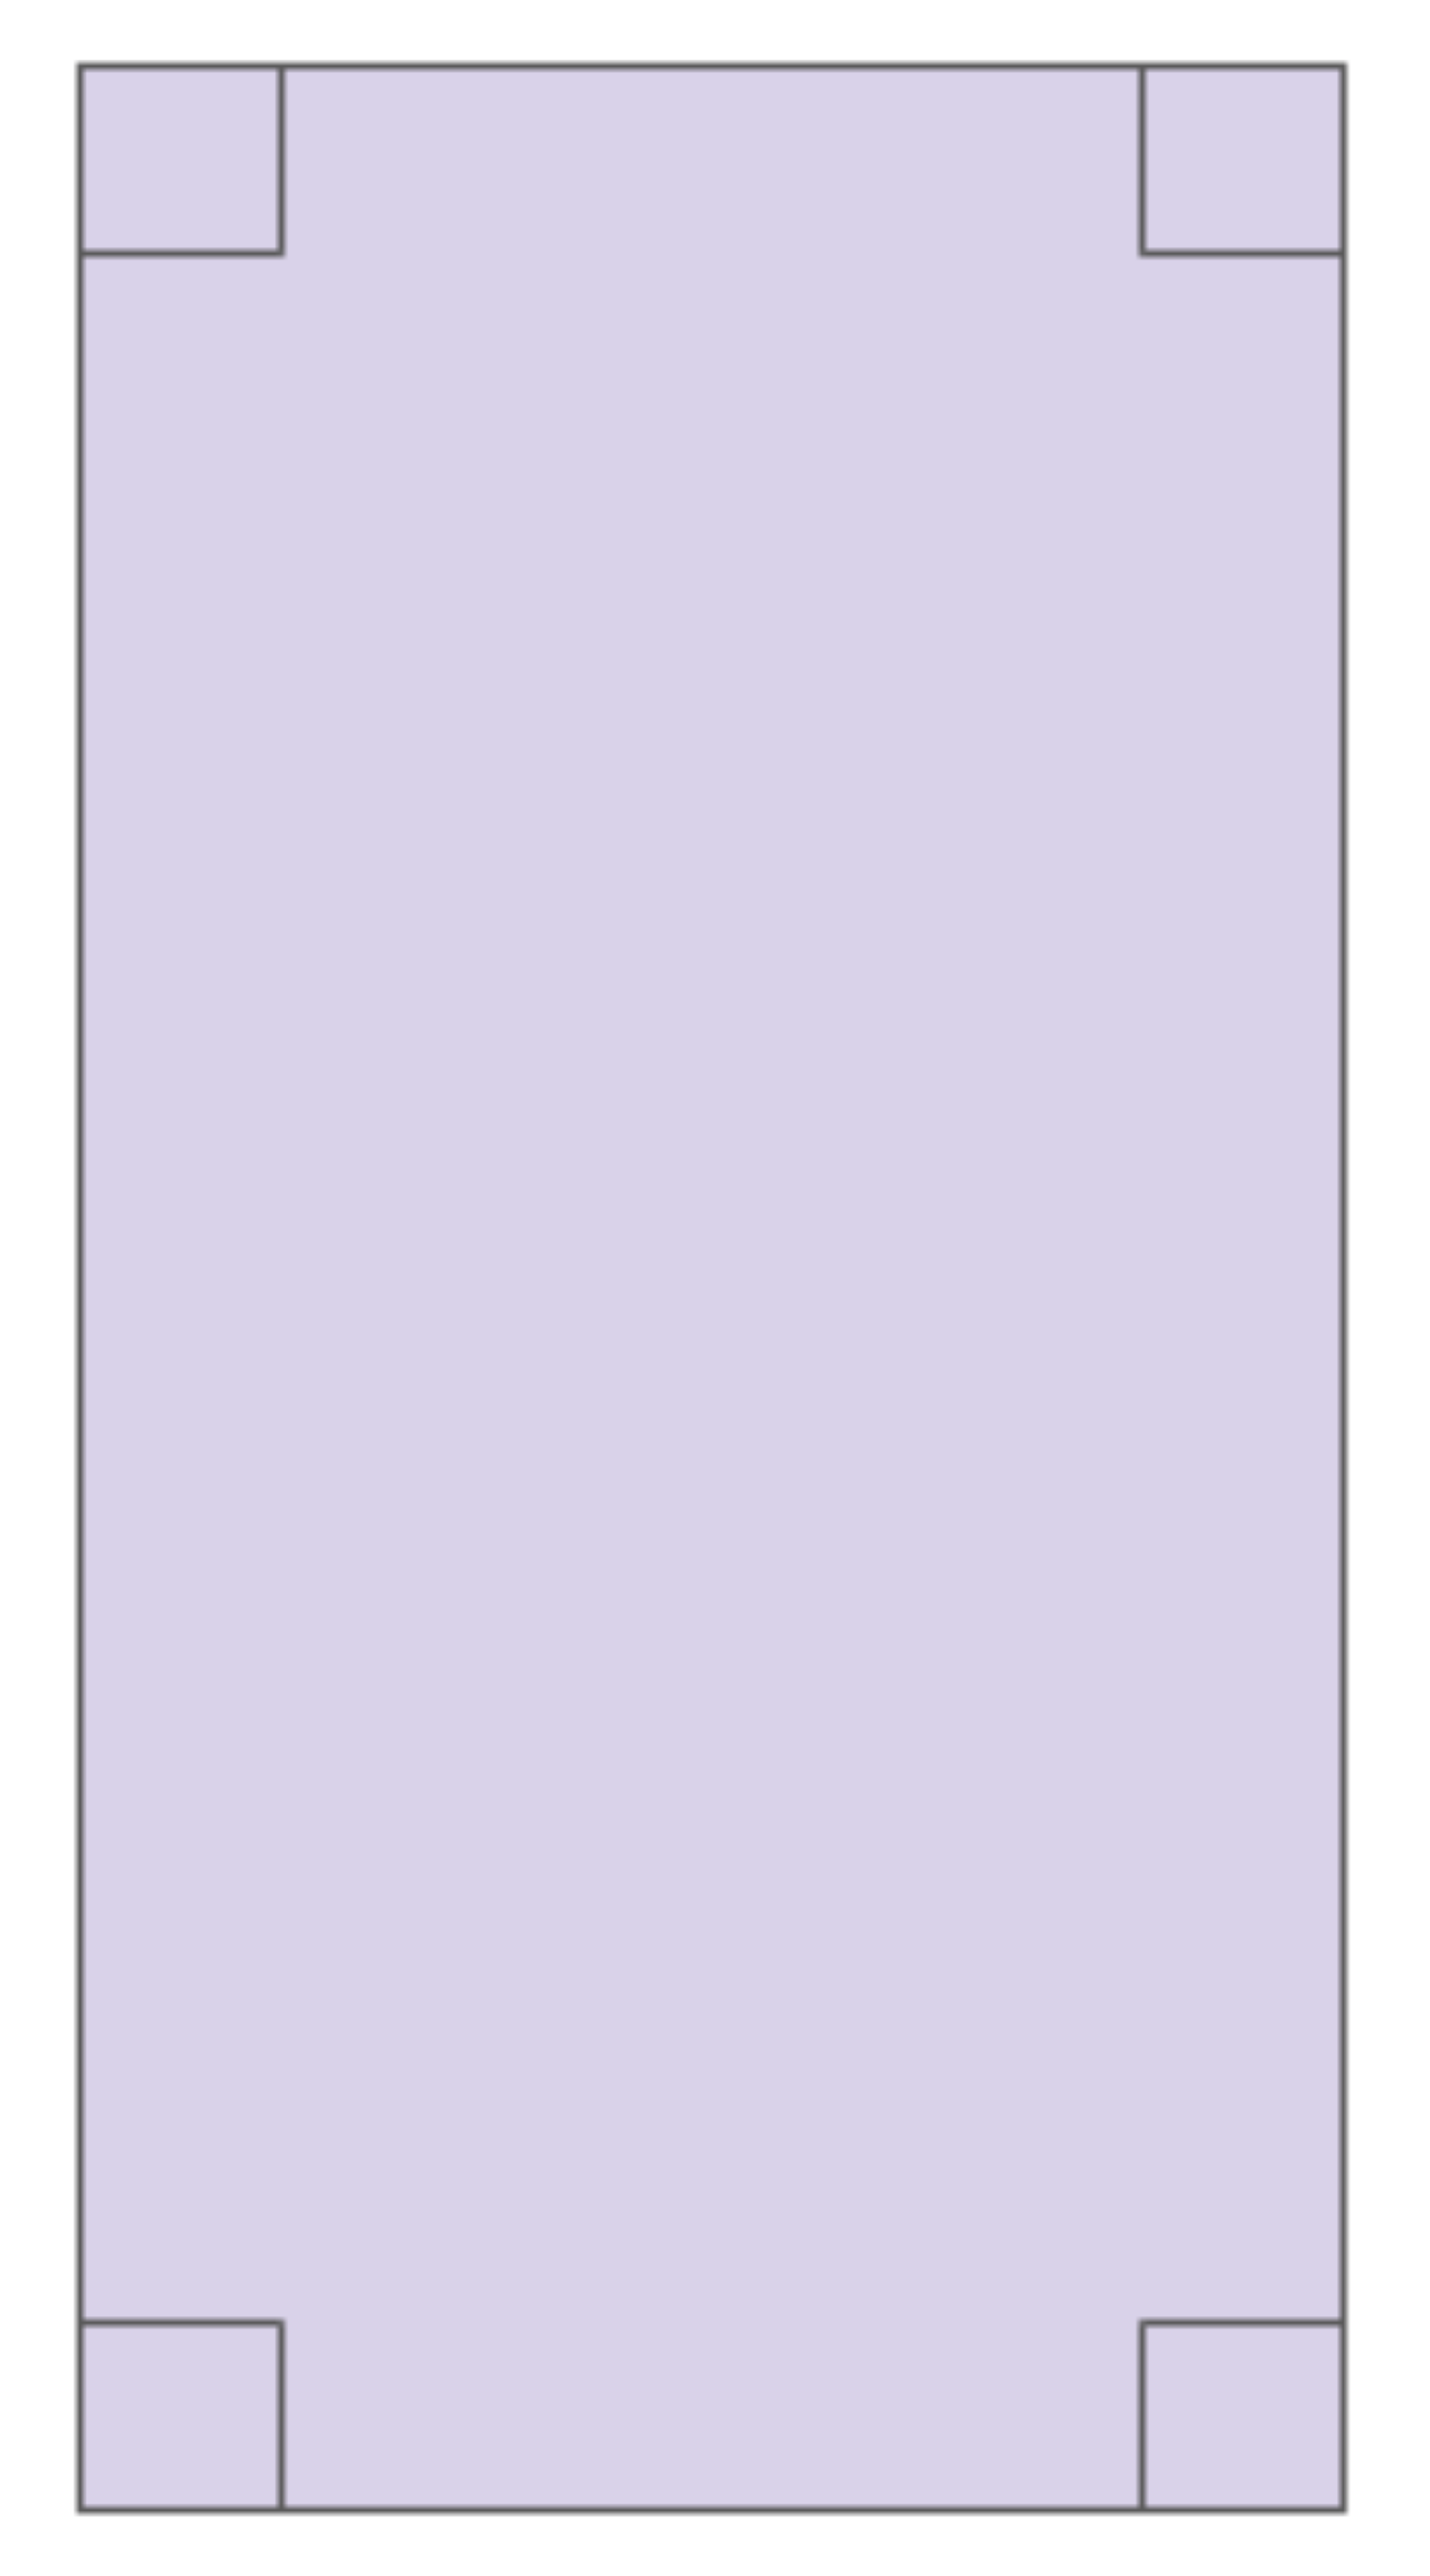 this is a rectangle